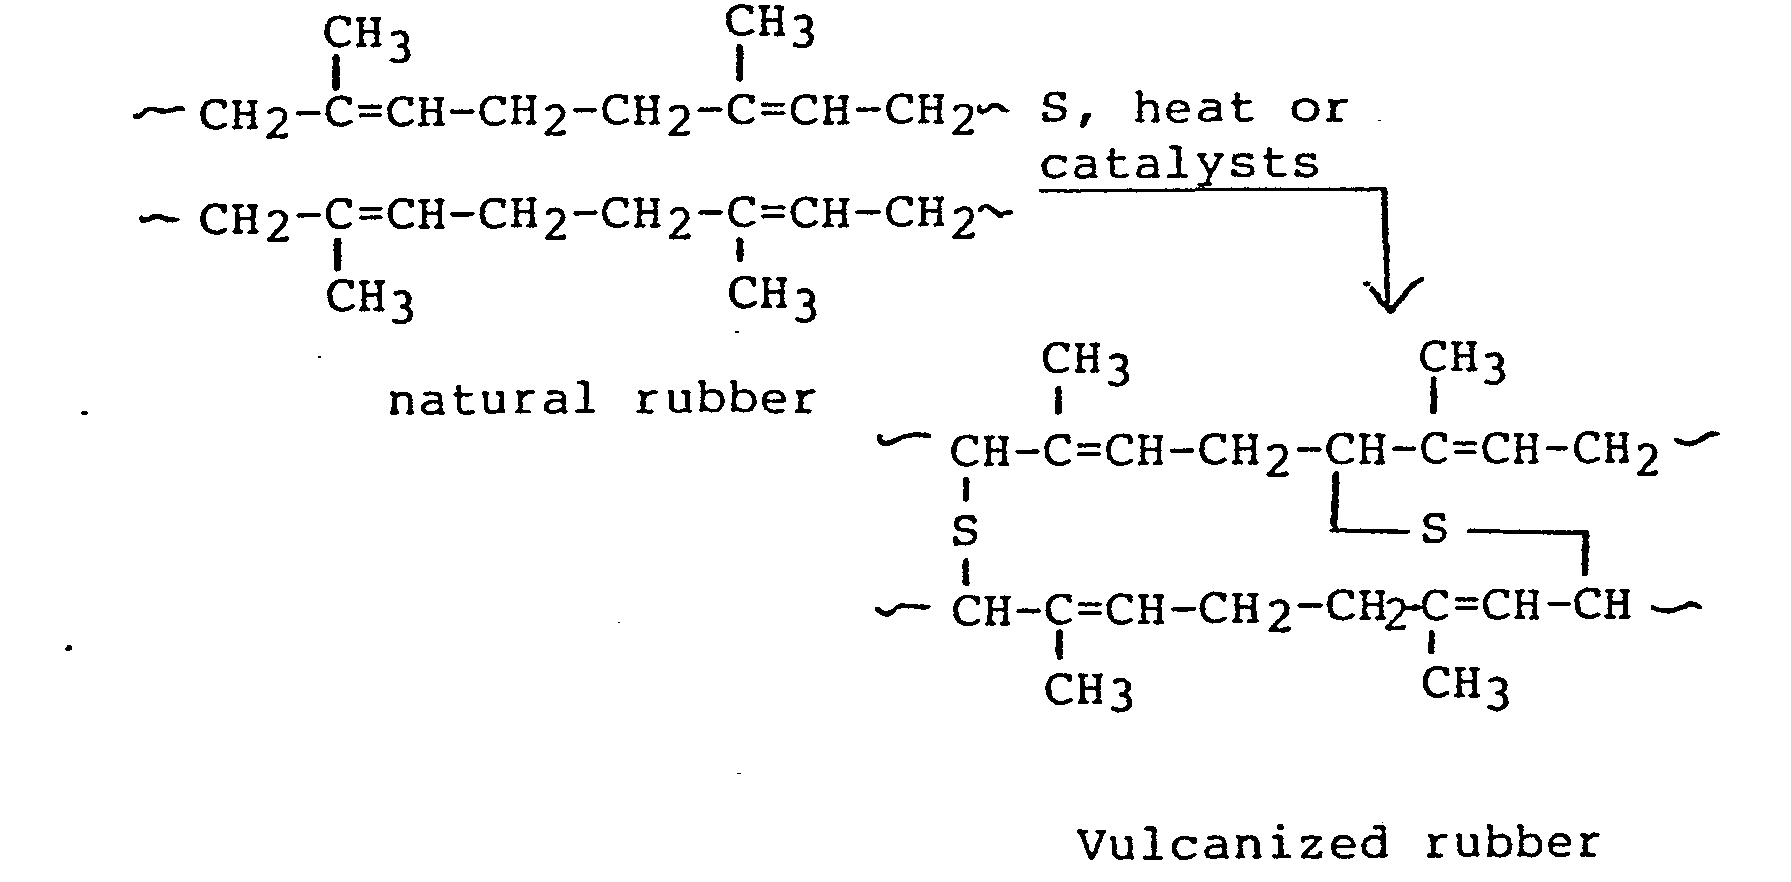 degradation of natural rubber Biodegradation of natural rubber and related compounds: recent insights into a hardly understood catabolic capability of microorganisms.